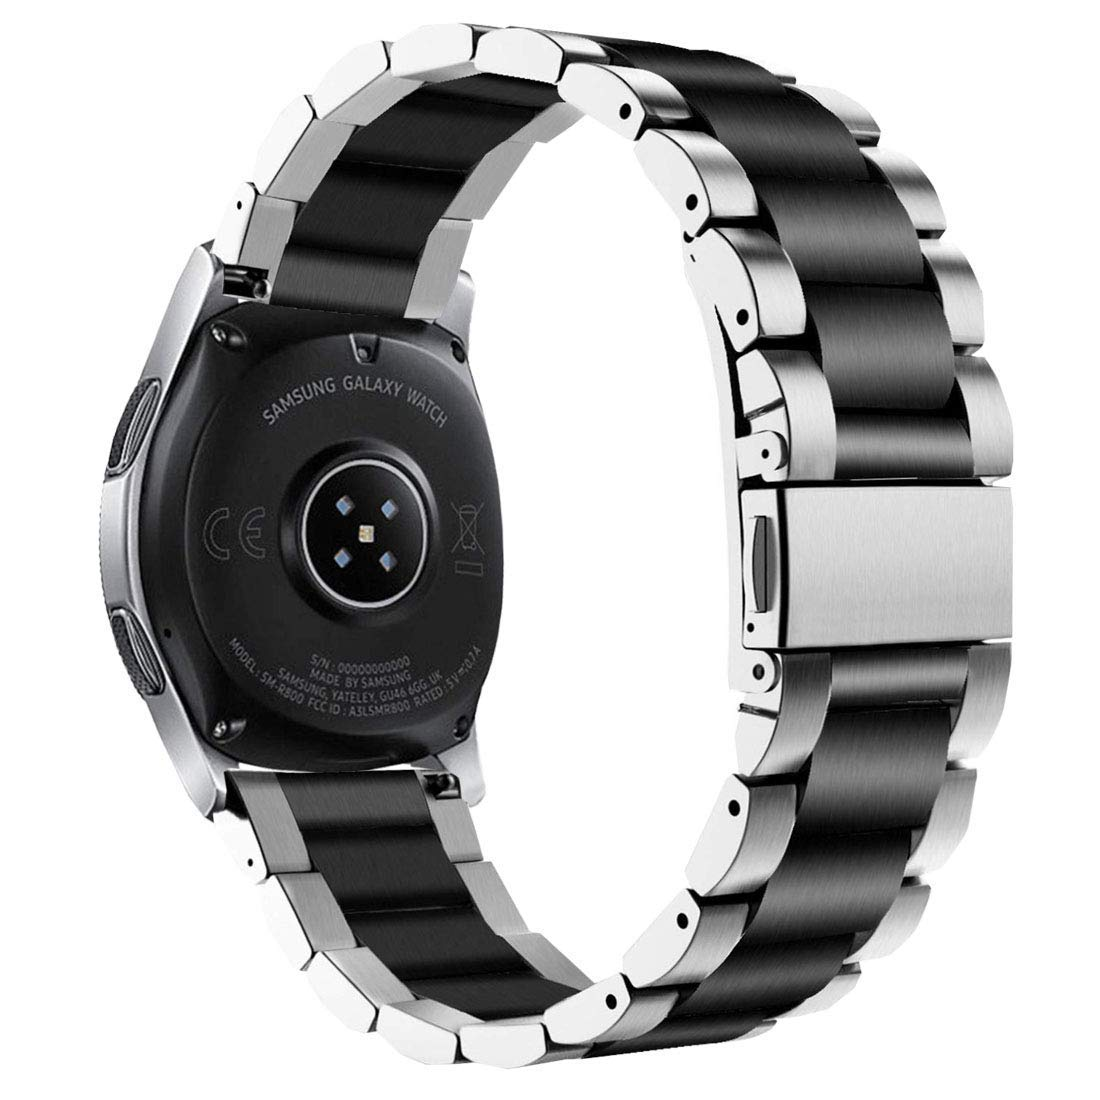 VIGOSS Compatible Galaxy Watch 46mm Band,Business Stainless Steel Solid Metal Watch Band for Samsung Galaxy Watch 46mm Smartwatch (46mm, Silver/Black)